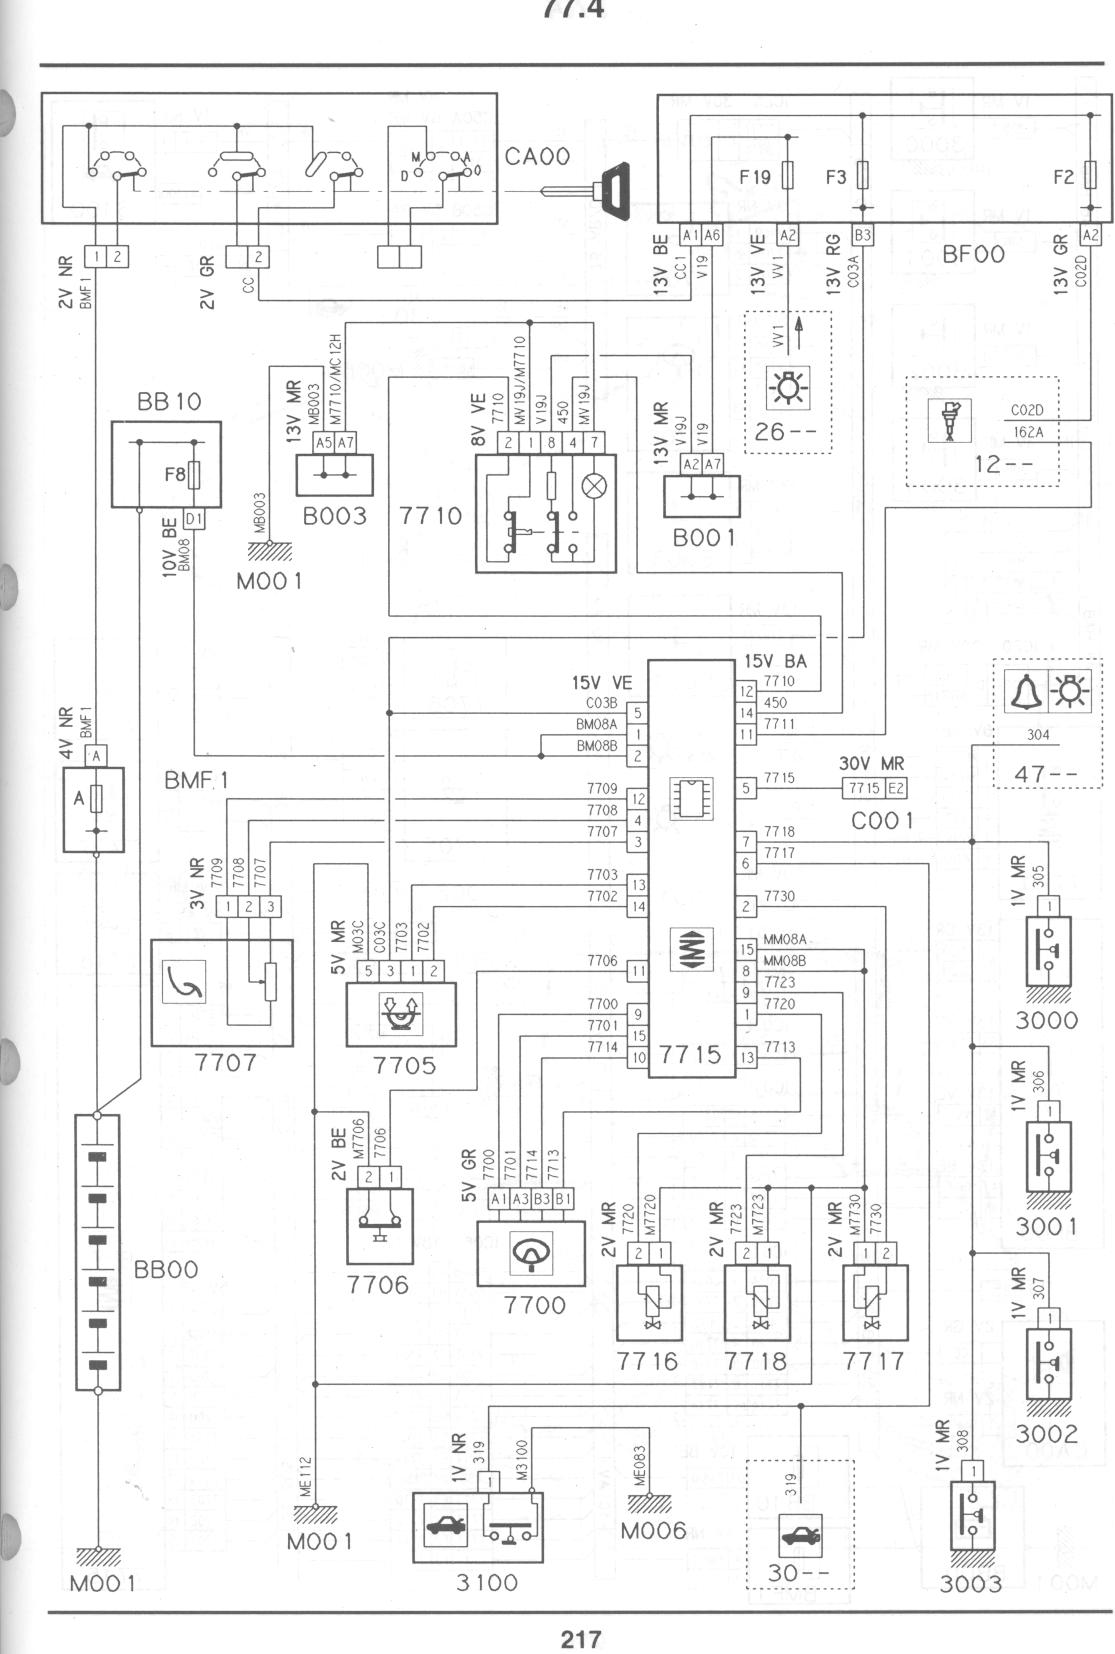 Citroen C3 Wiring Diagram Pdf Library Xantia Ecu C5 Audi A6 Download Efcaviationcom